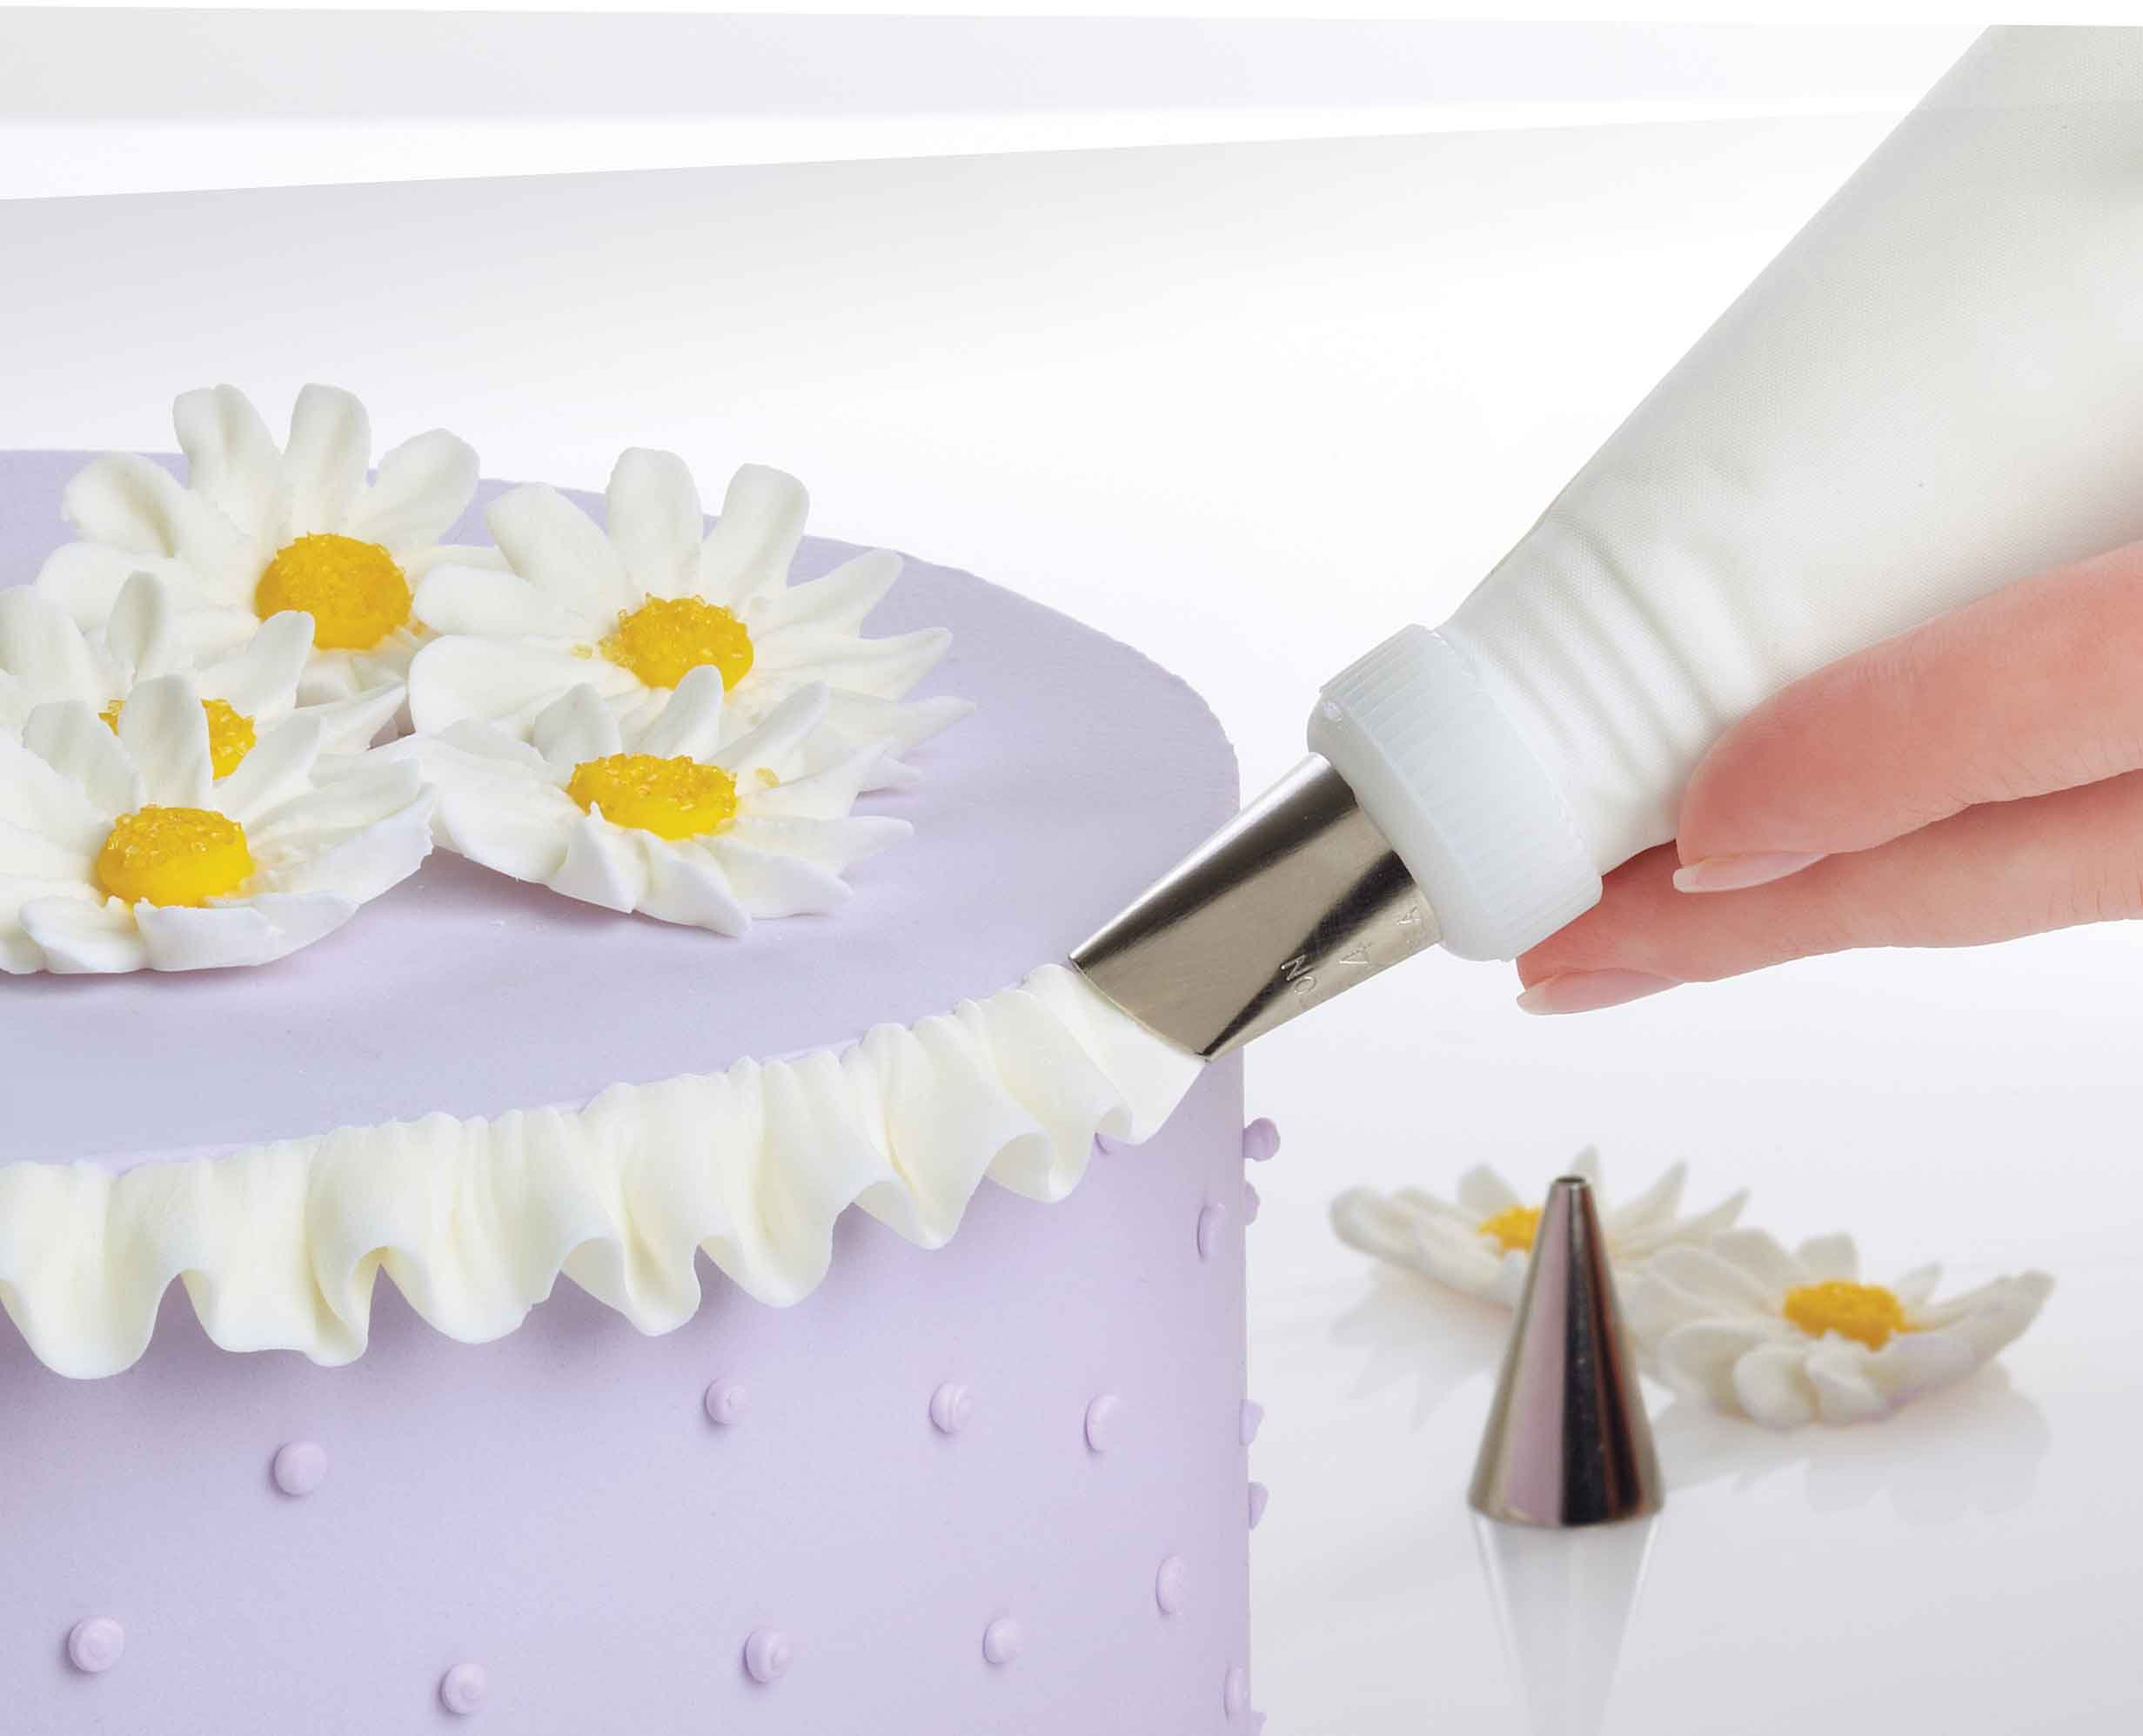 Cake Decorating Utensils : Wilton 2109-0309 Ultimate Professional Cake Decorating Set, Purple- Discontinued eBay